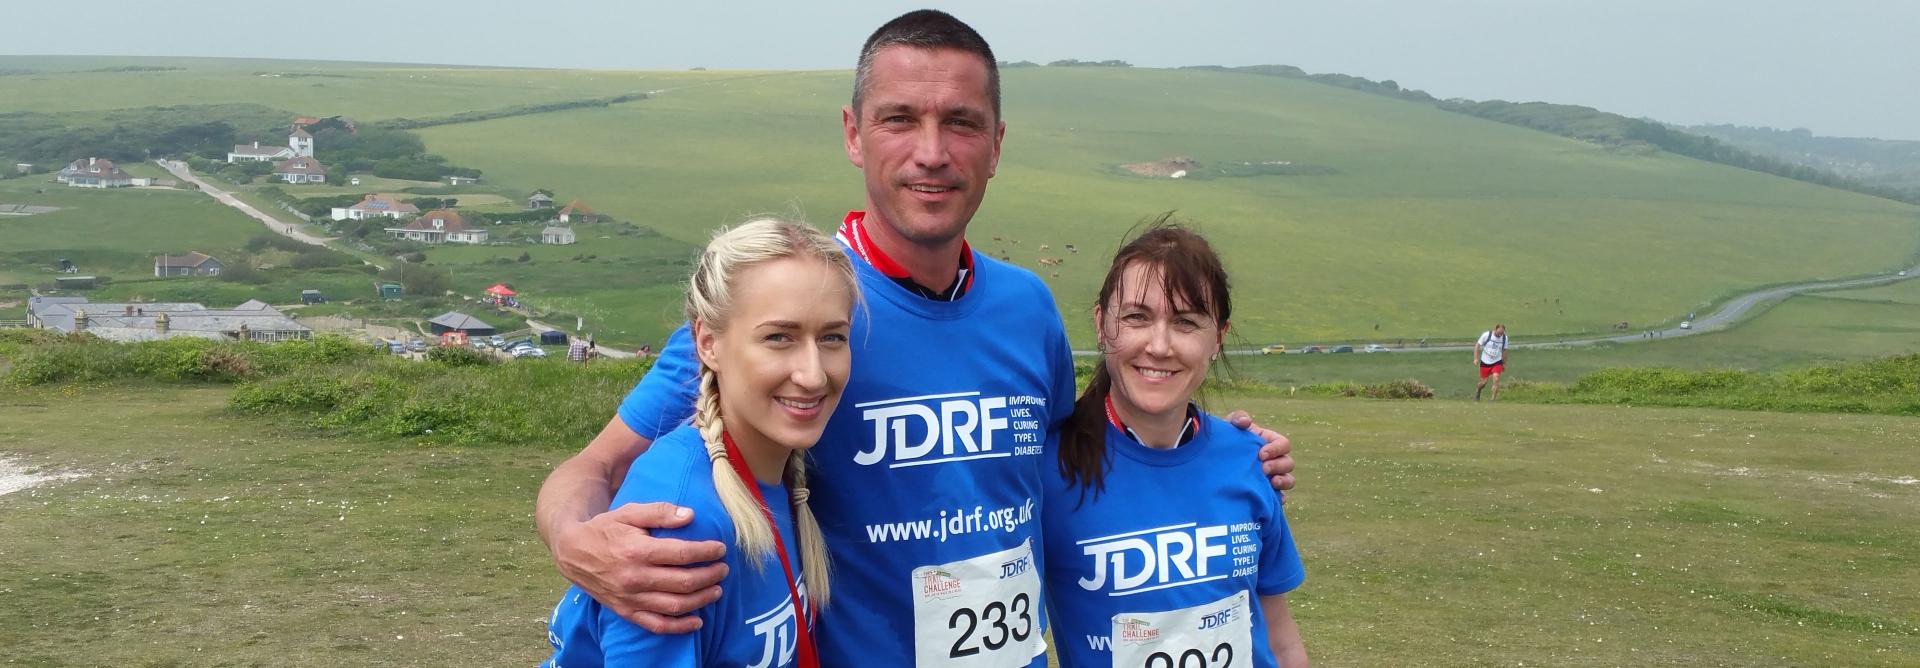 JDRF South Downs